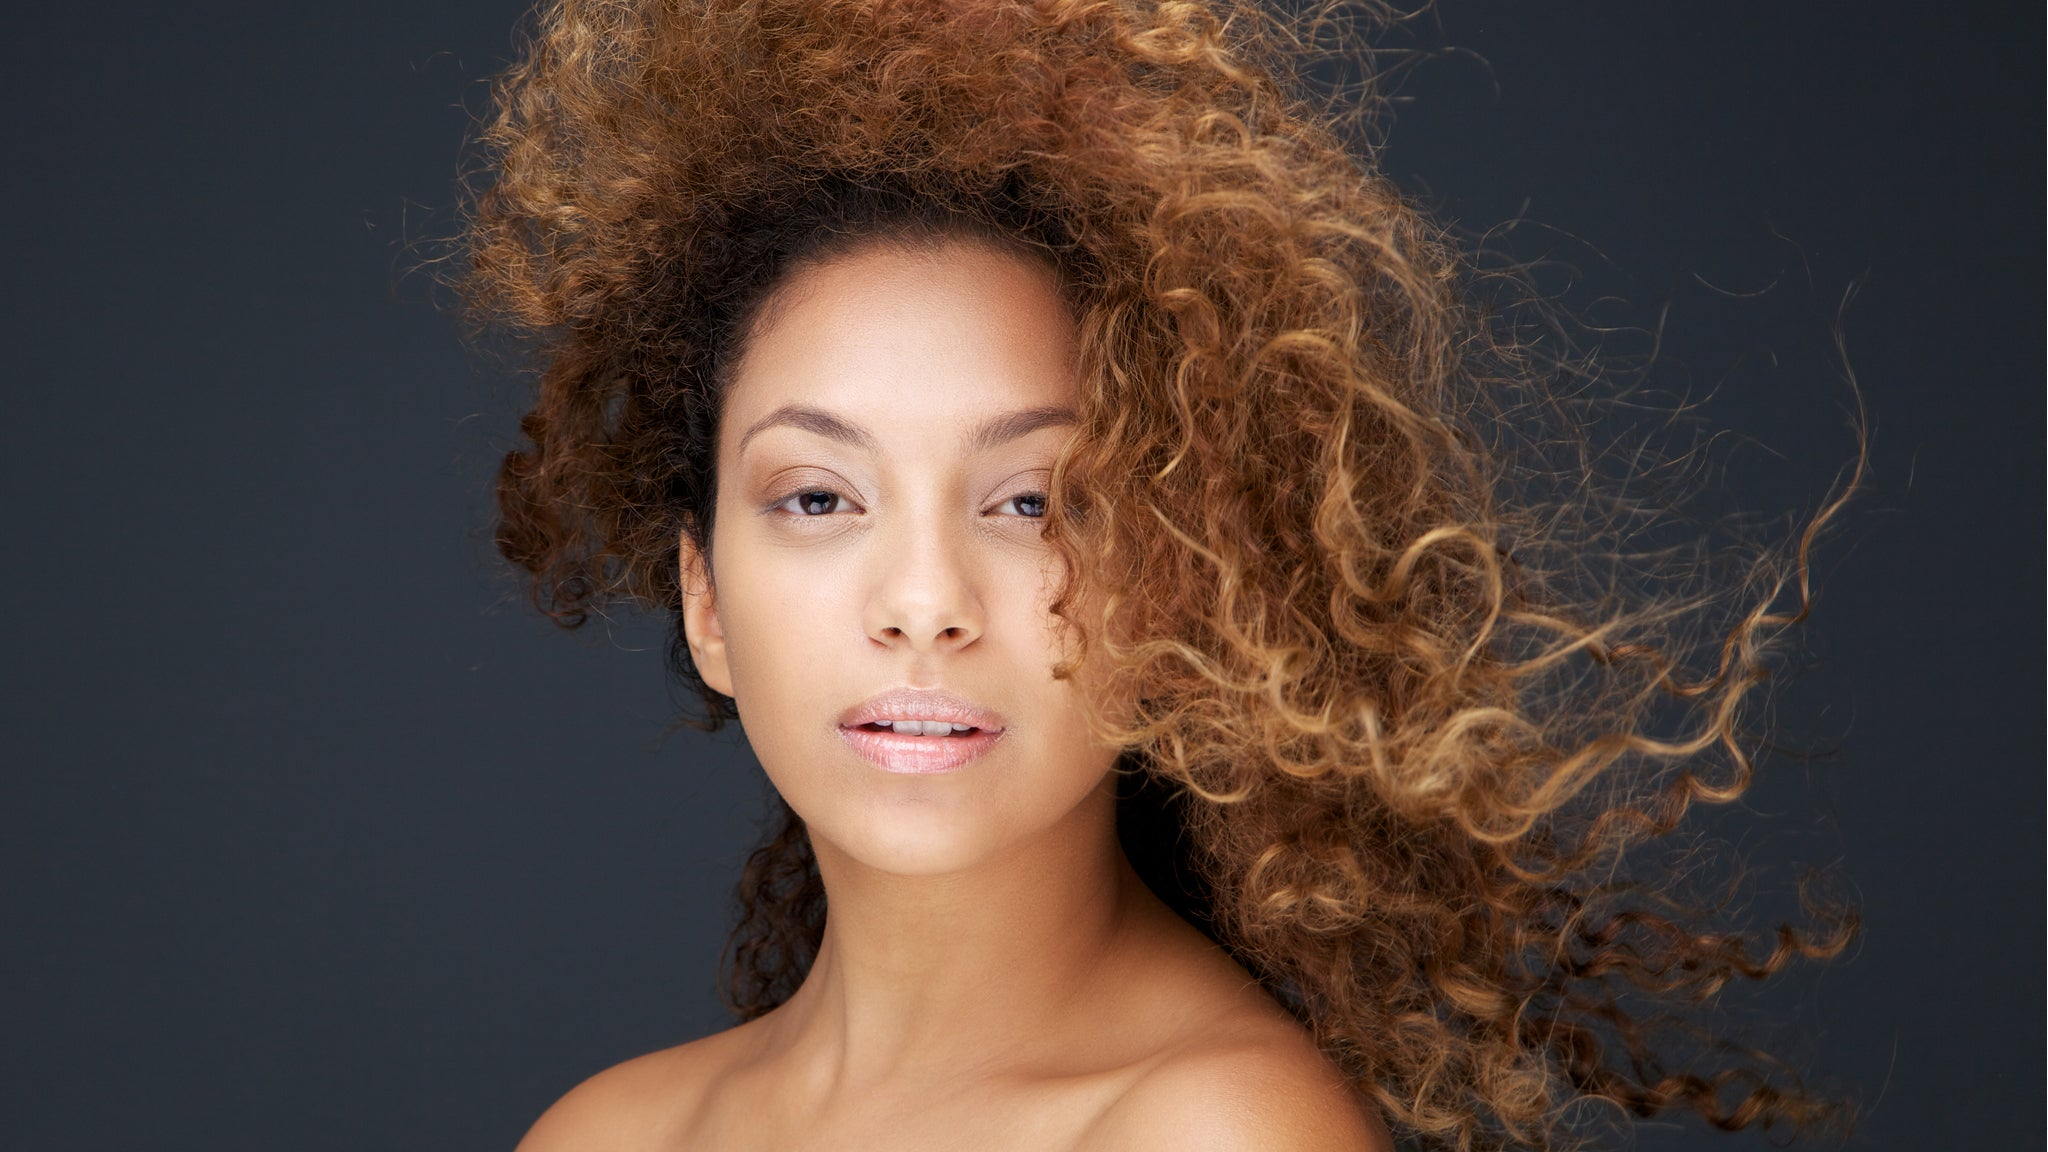 Natural Organic Hair Care Products for Curly, Coily Hair